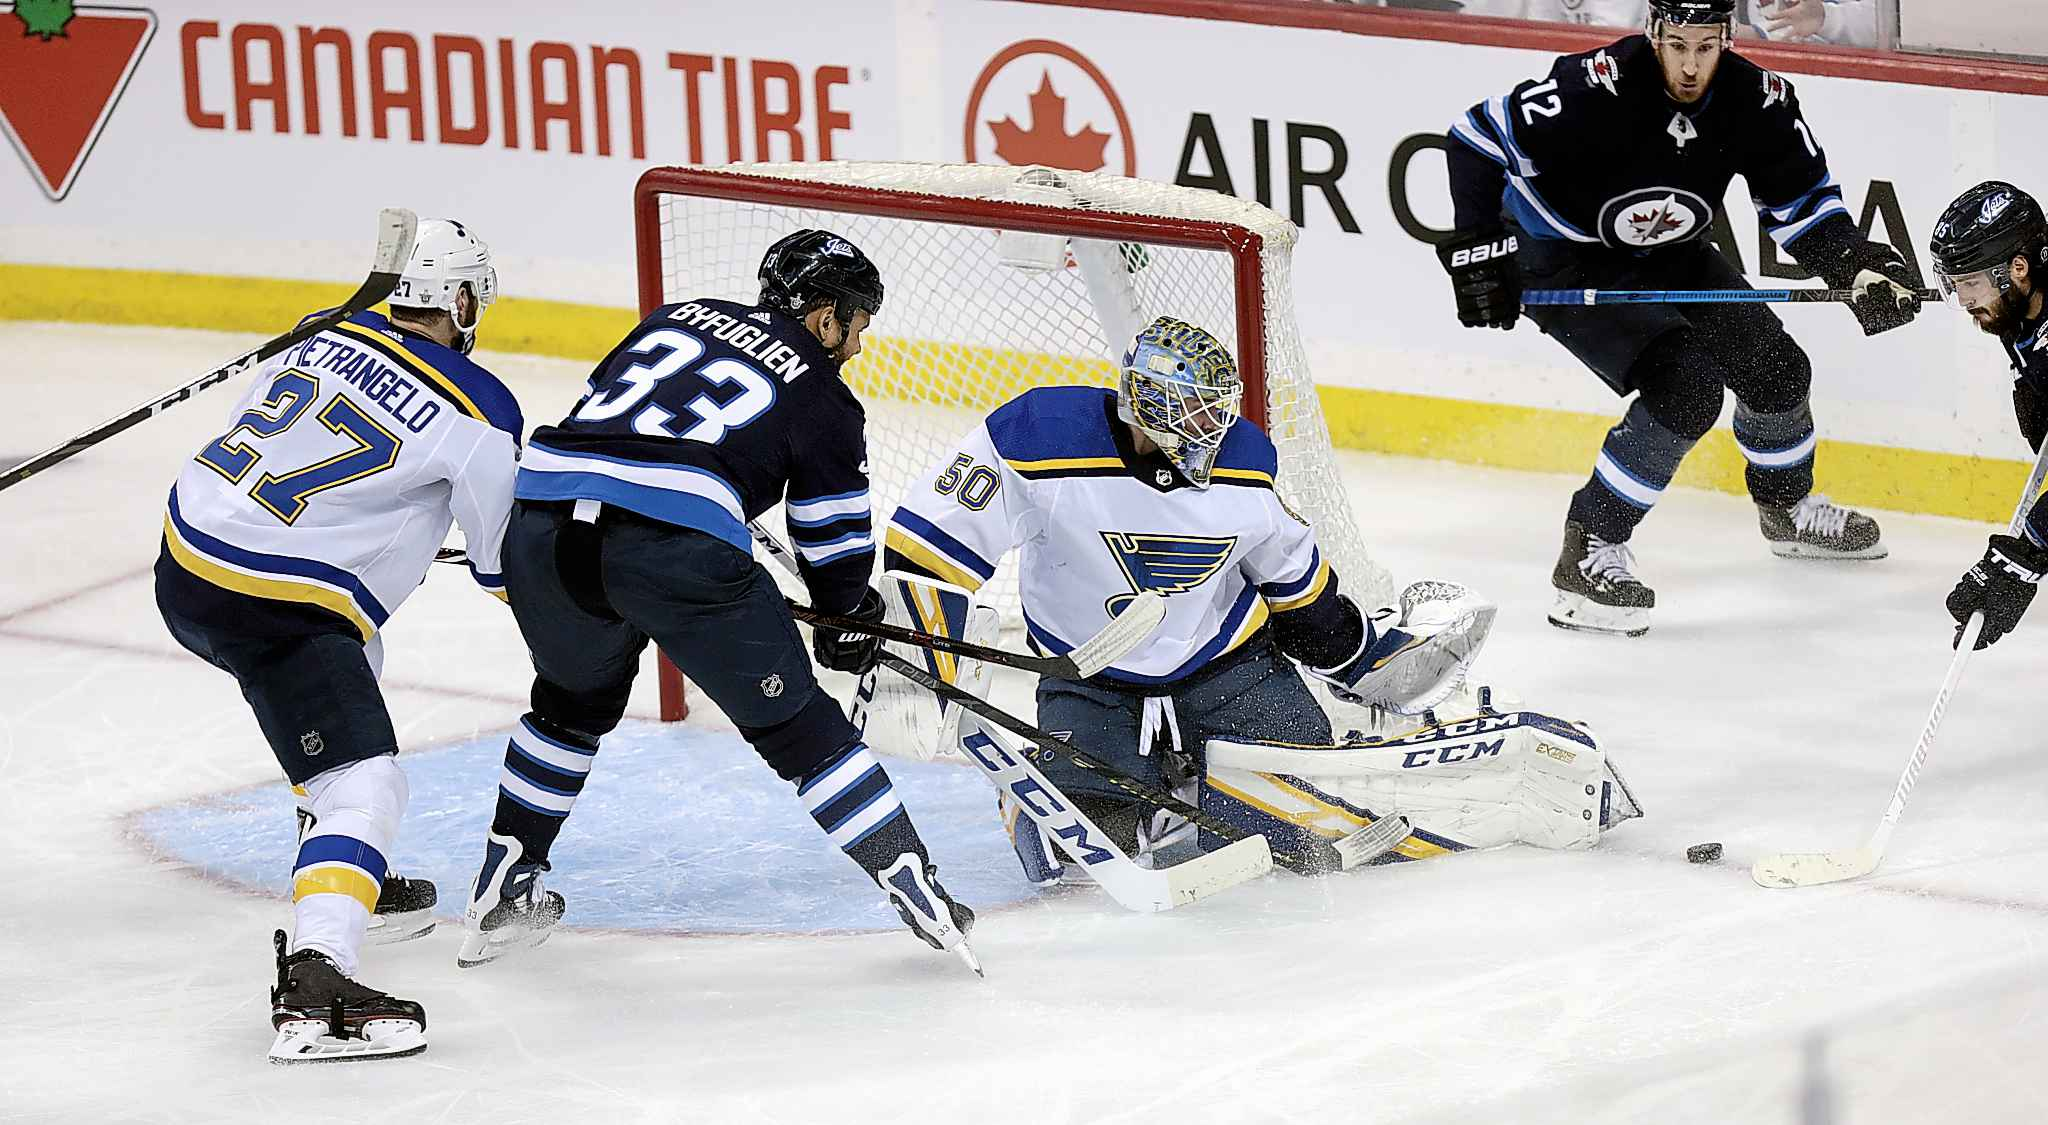 Winnipeg Jets' Dustin Byfuglien slams an attempt against the pads of Blues' netminder Jordan Binnington.